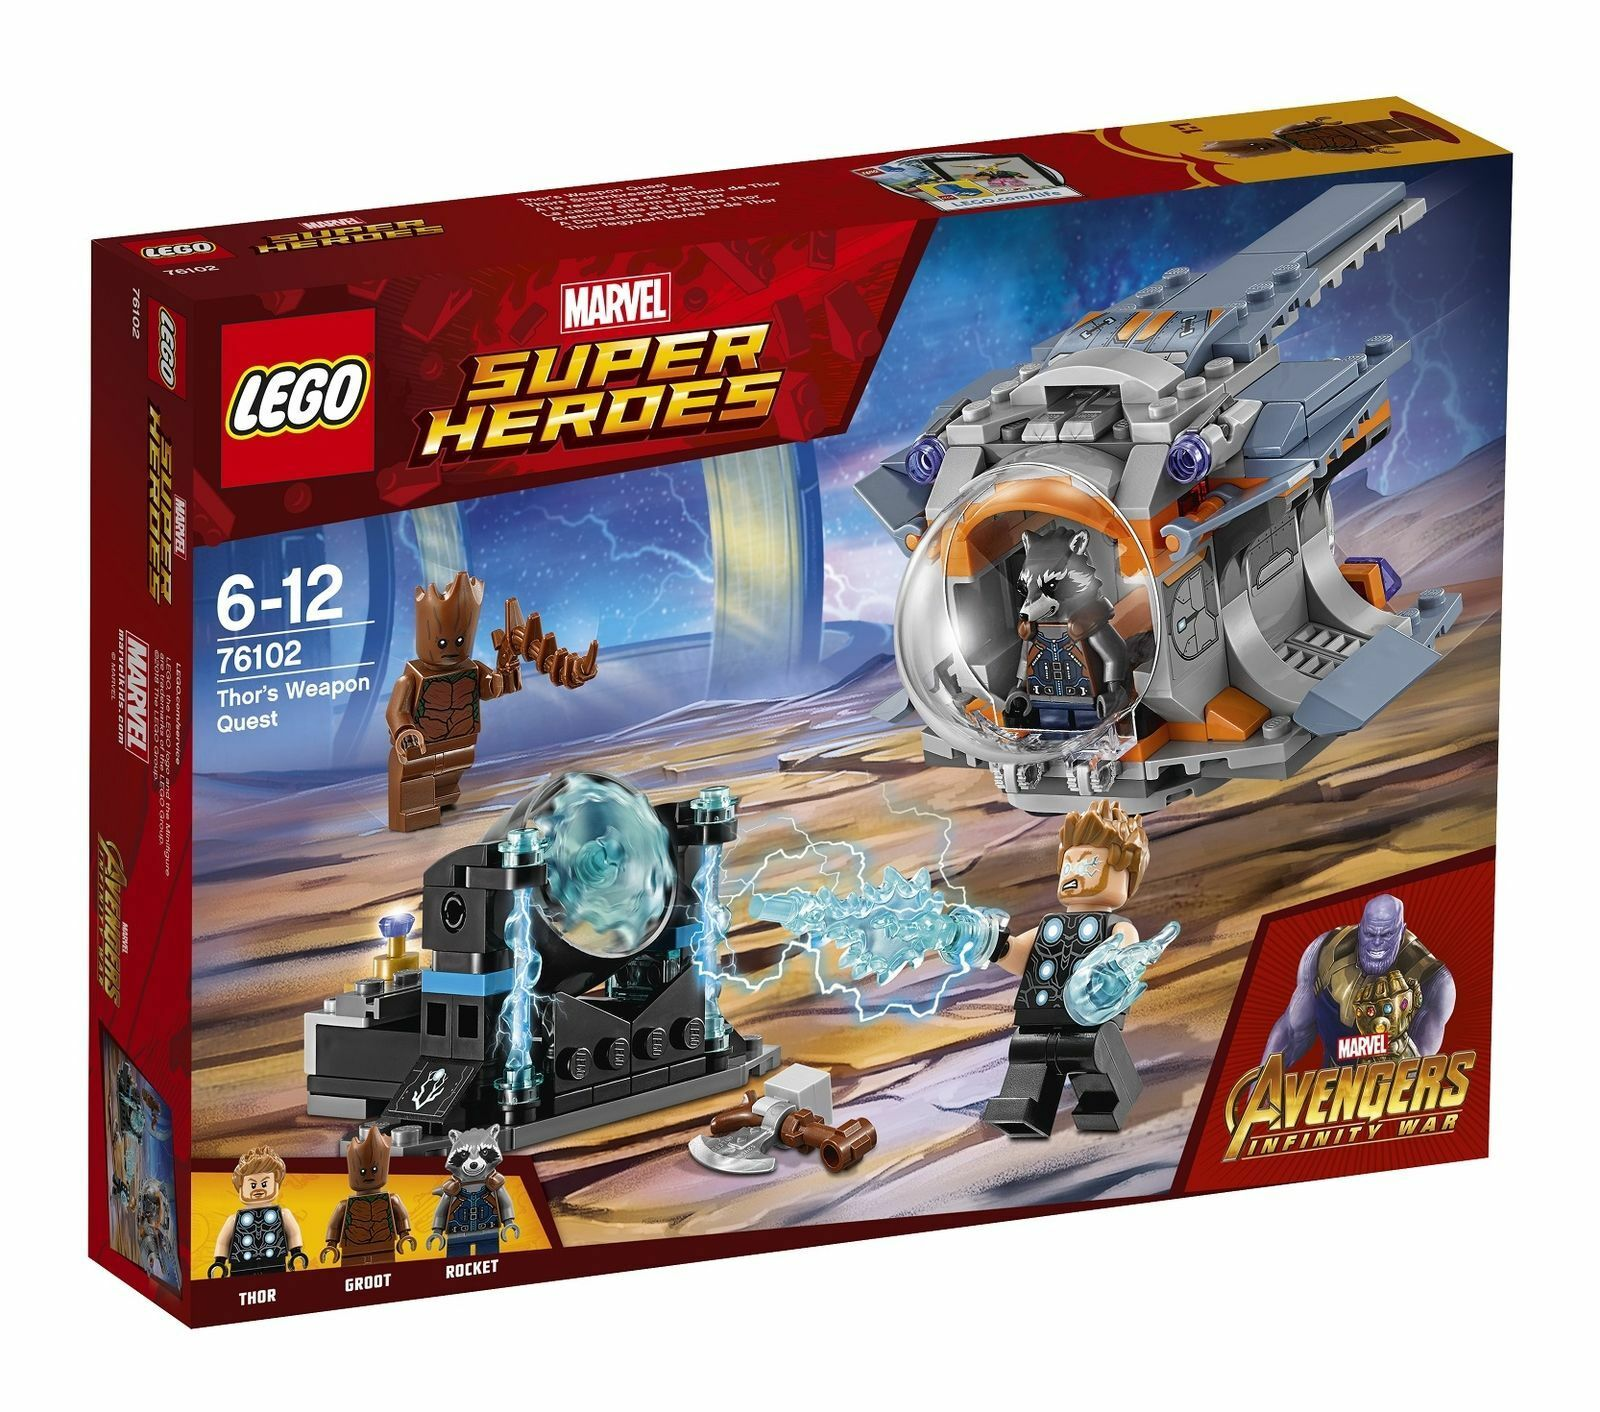 LEGO Marvel Super Heroes Thor's Weapon Quest  SET 76102 AVENGERS INFINITY WAR  1